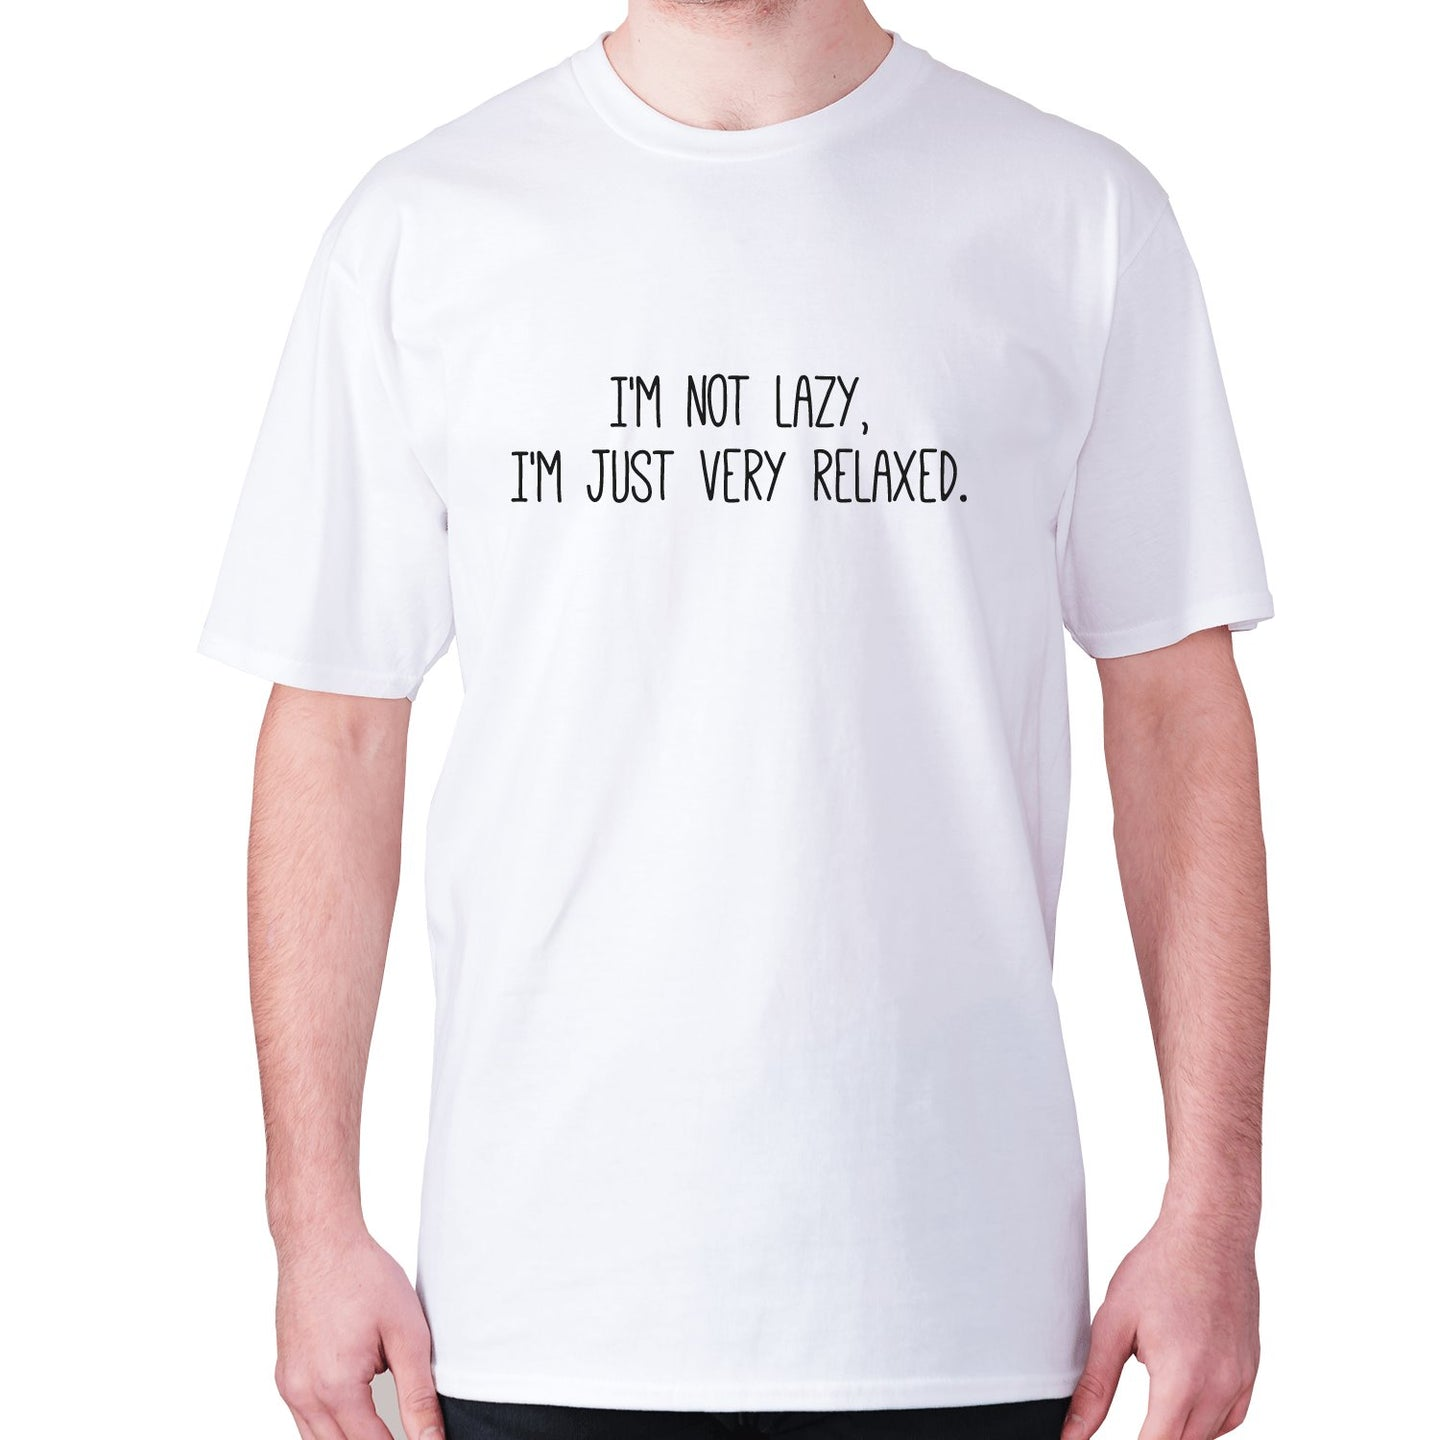 I'm not lazy, I'm just very relaxed - men's premium t-shirt - White / S - Graphic Gear